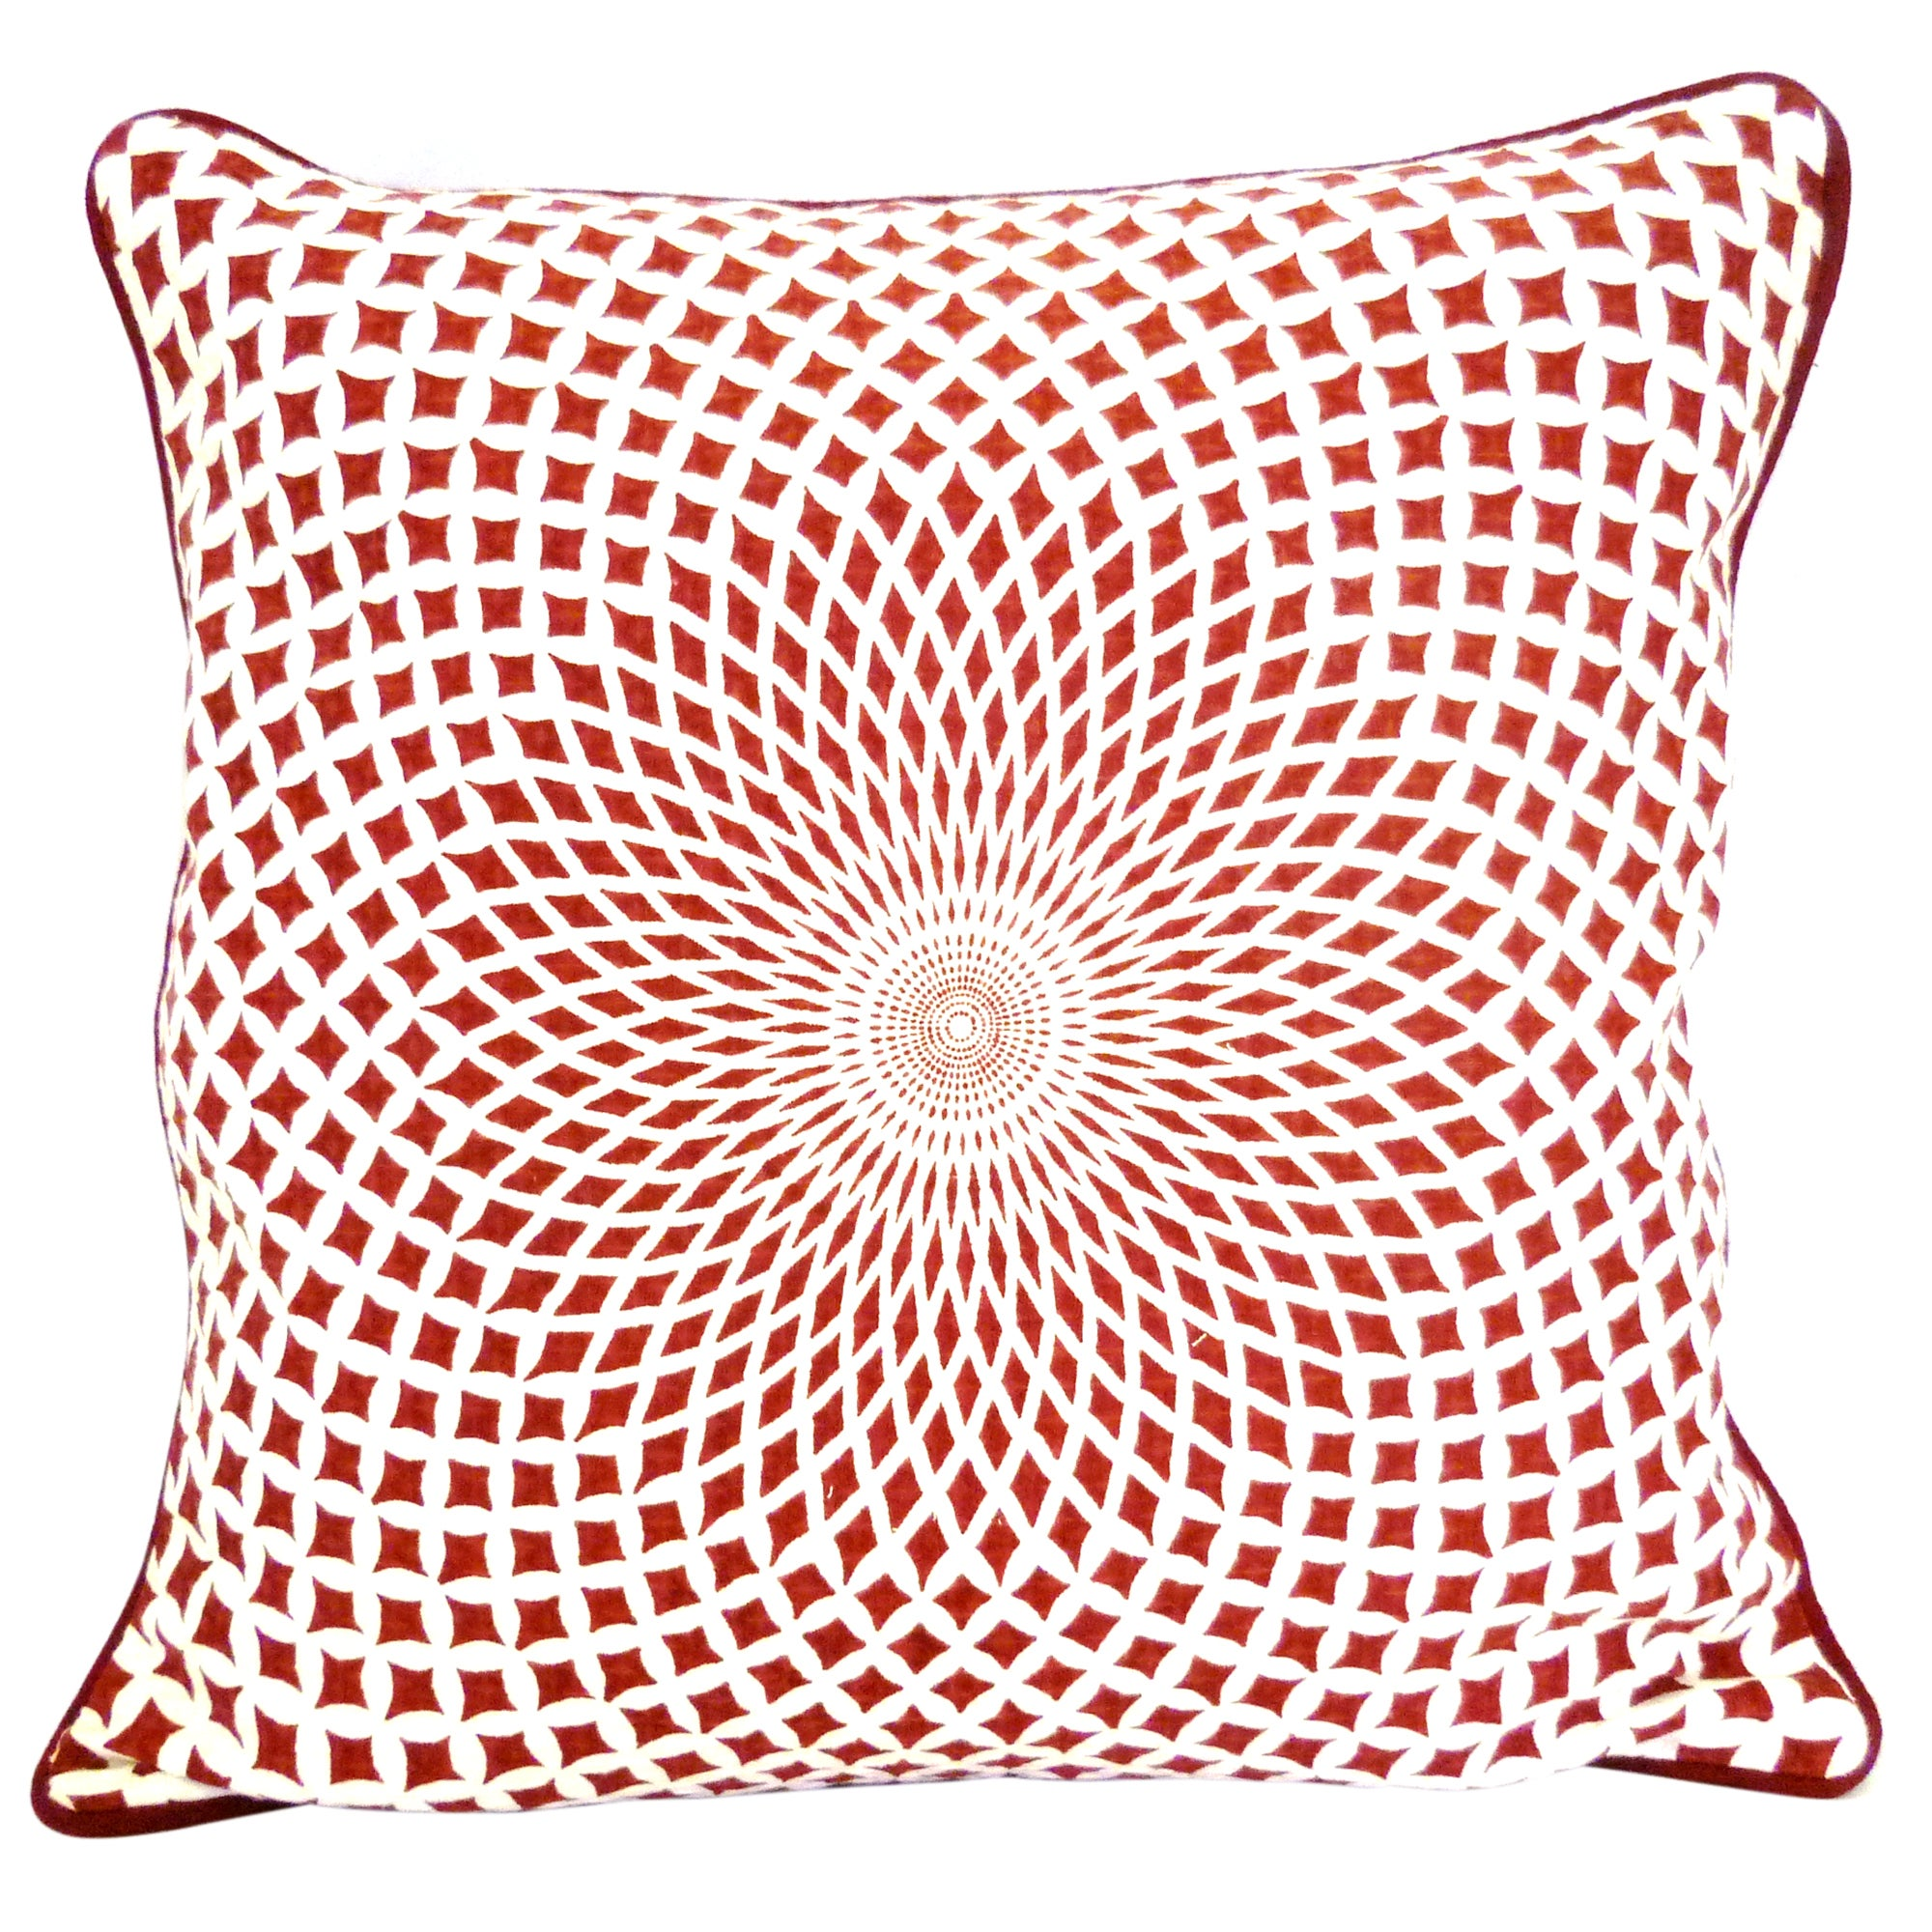 Floral Illusion Cushion